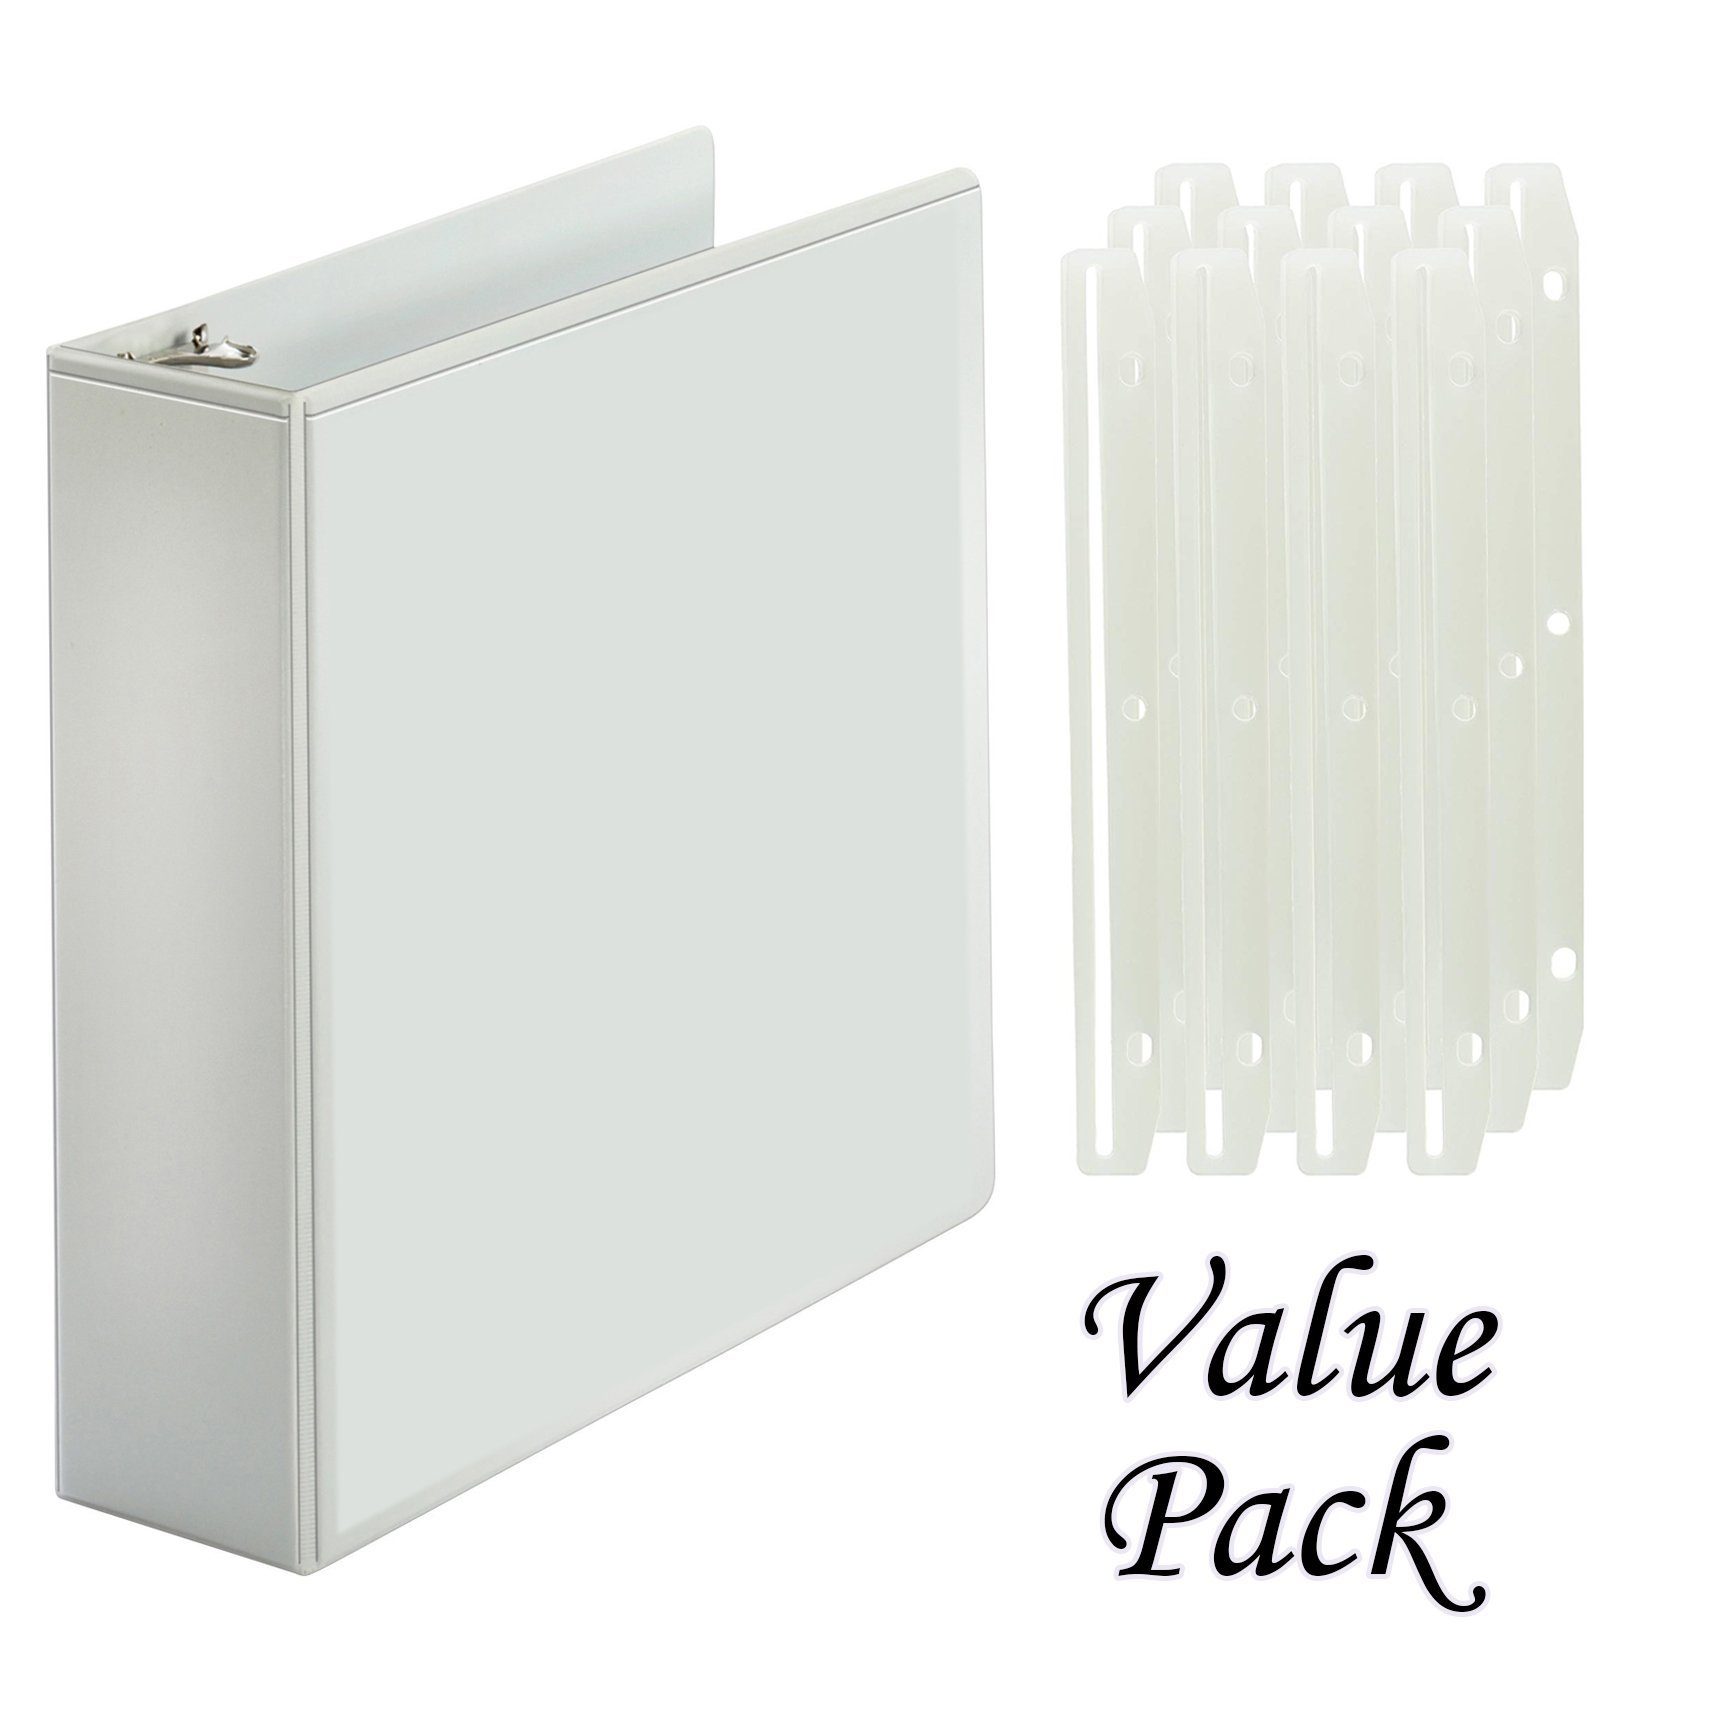 3 Inch Magazine/Catalog Binders, View Binder, with 3-Hole Punched Plastic Strip Magazine Holders 12 Pcs – Perfect for Magazine/Catalog Organizing, Collecting and Storaging – Value Set - (White Binder)